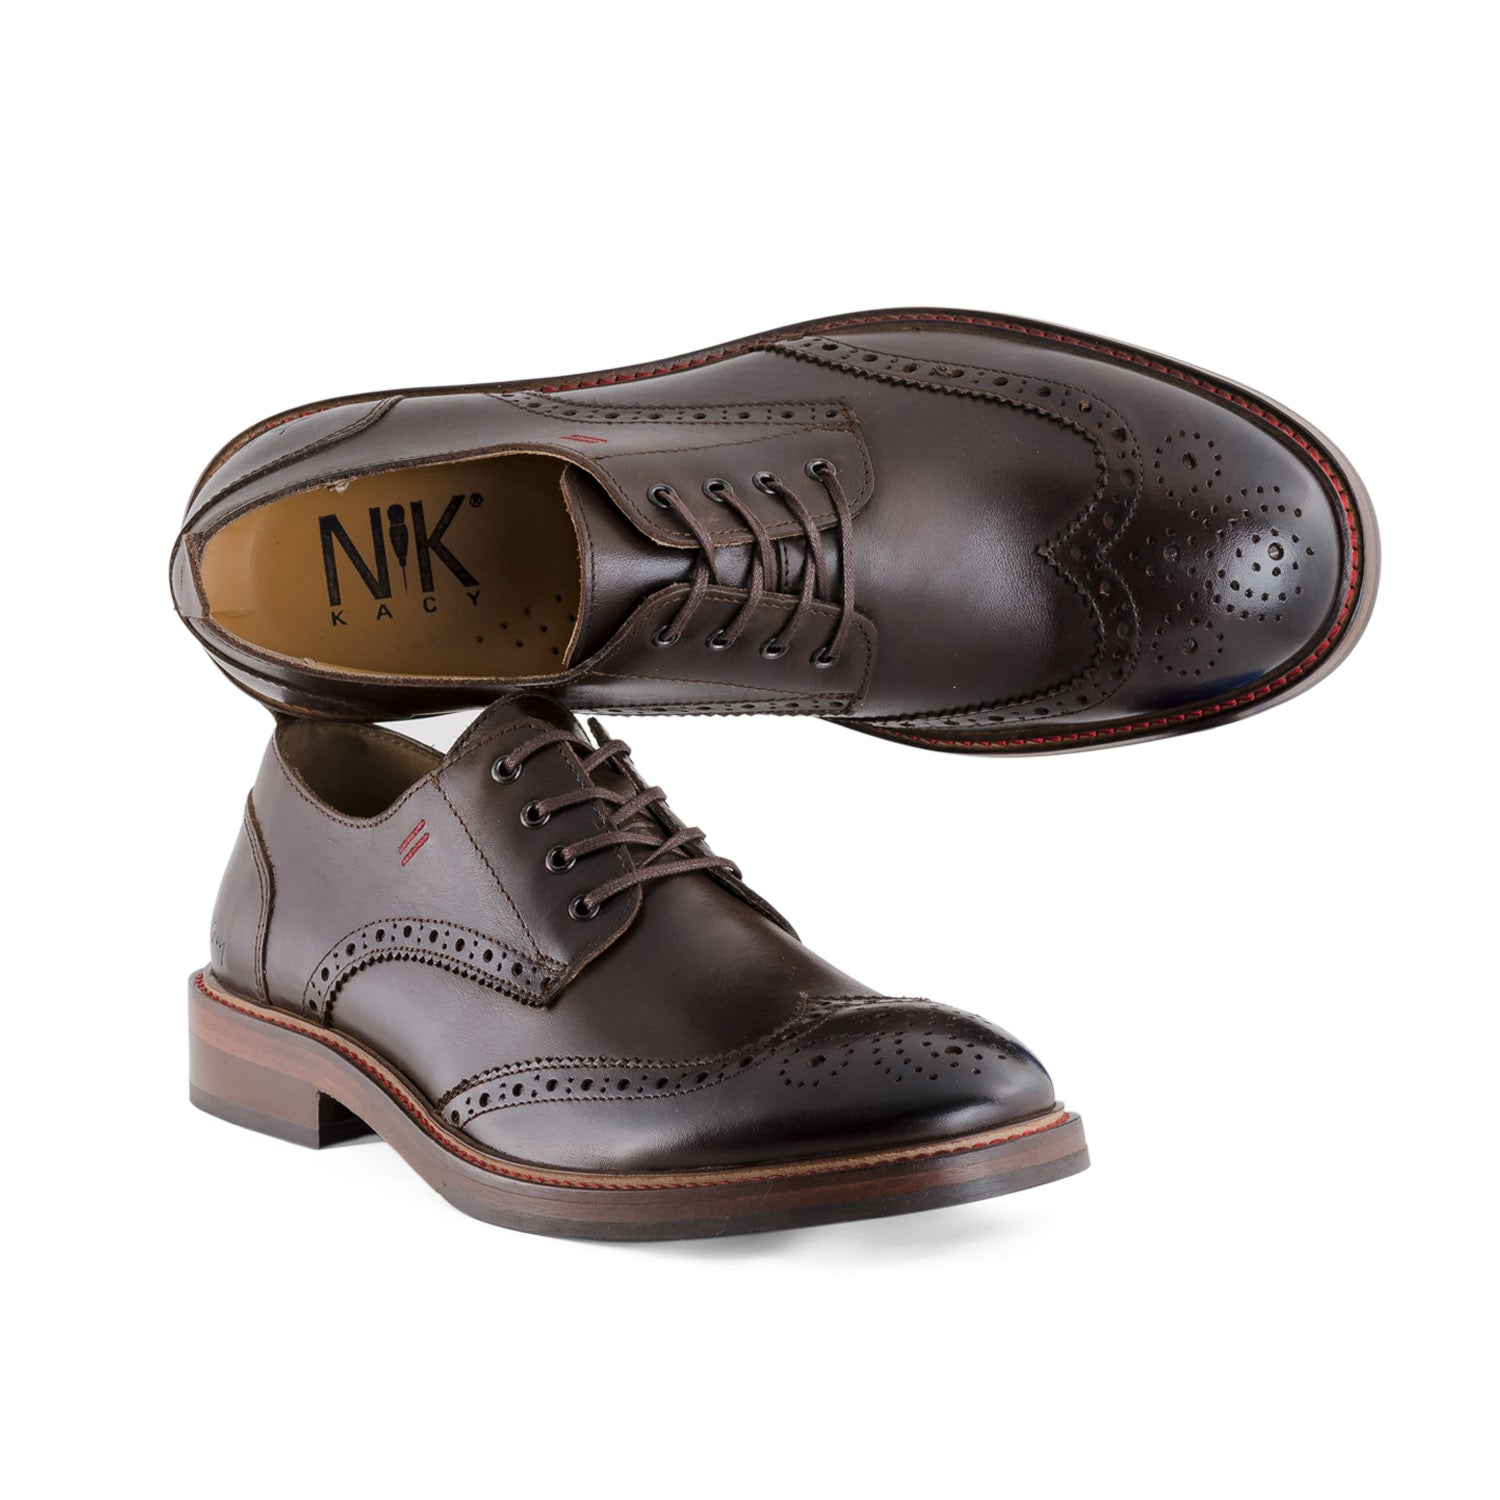 NiK Kacy Luxury, Handcrafted Dark Brown Wingtip Shoes Limited-Edition